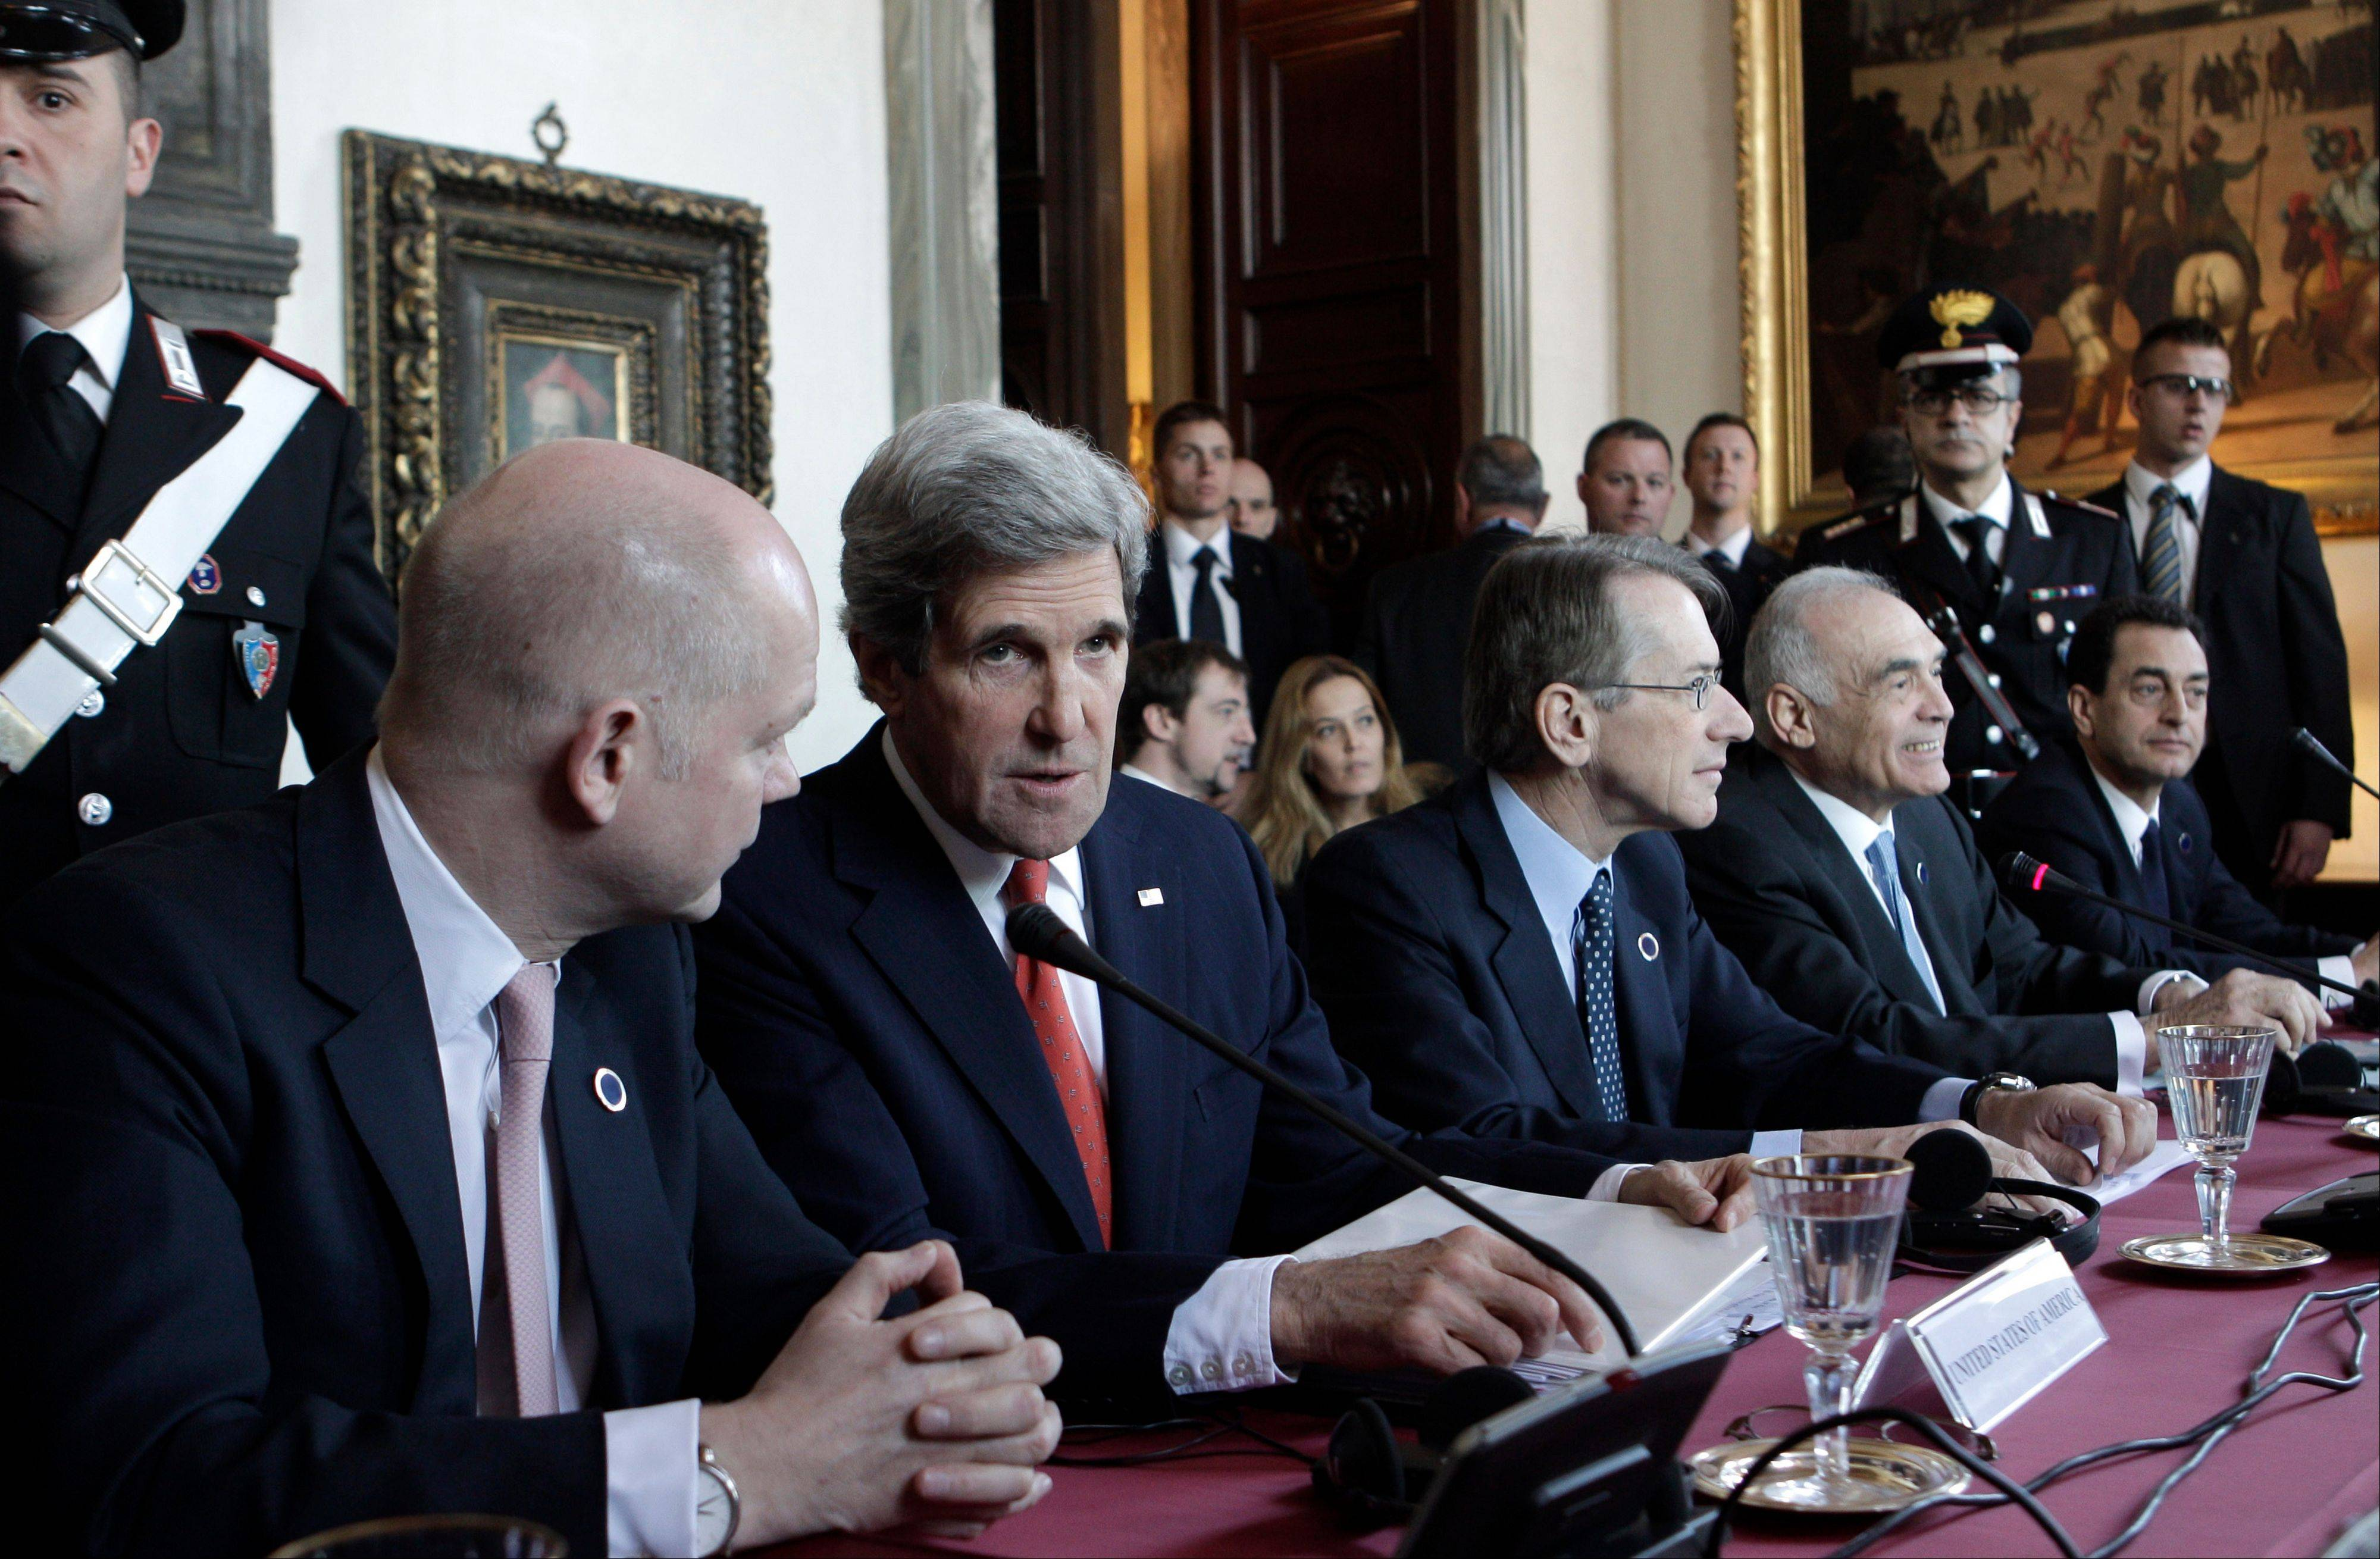 U.S. secretary of state John Kerry, second from left, talks to British Prime Minister William Hague, left, as Italian Foreign Minister Giulio Terzi, third from left, and Egyptian Foreign Minister Mohamed Kamel Amr, second from right, are seen Thursday during an international conference on Syria at Villa Madama, Rome. The United States is looking for more tangible ways to support Syria's rebels and bolster a fledgling political movement that is struggling to deliver basic services after nearly two years of civil war, Kerry said Wednesday. In the background at left is British Foreign Secretary William Hague.